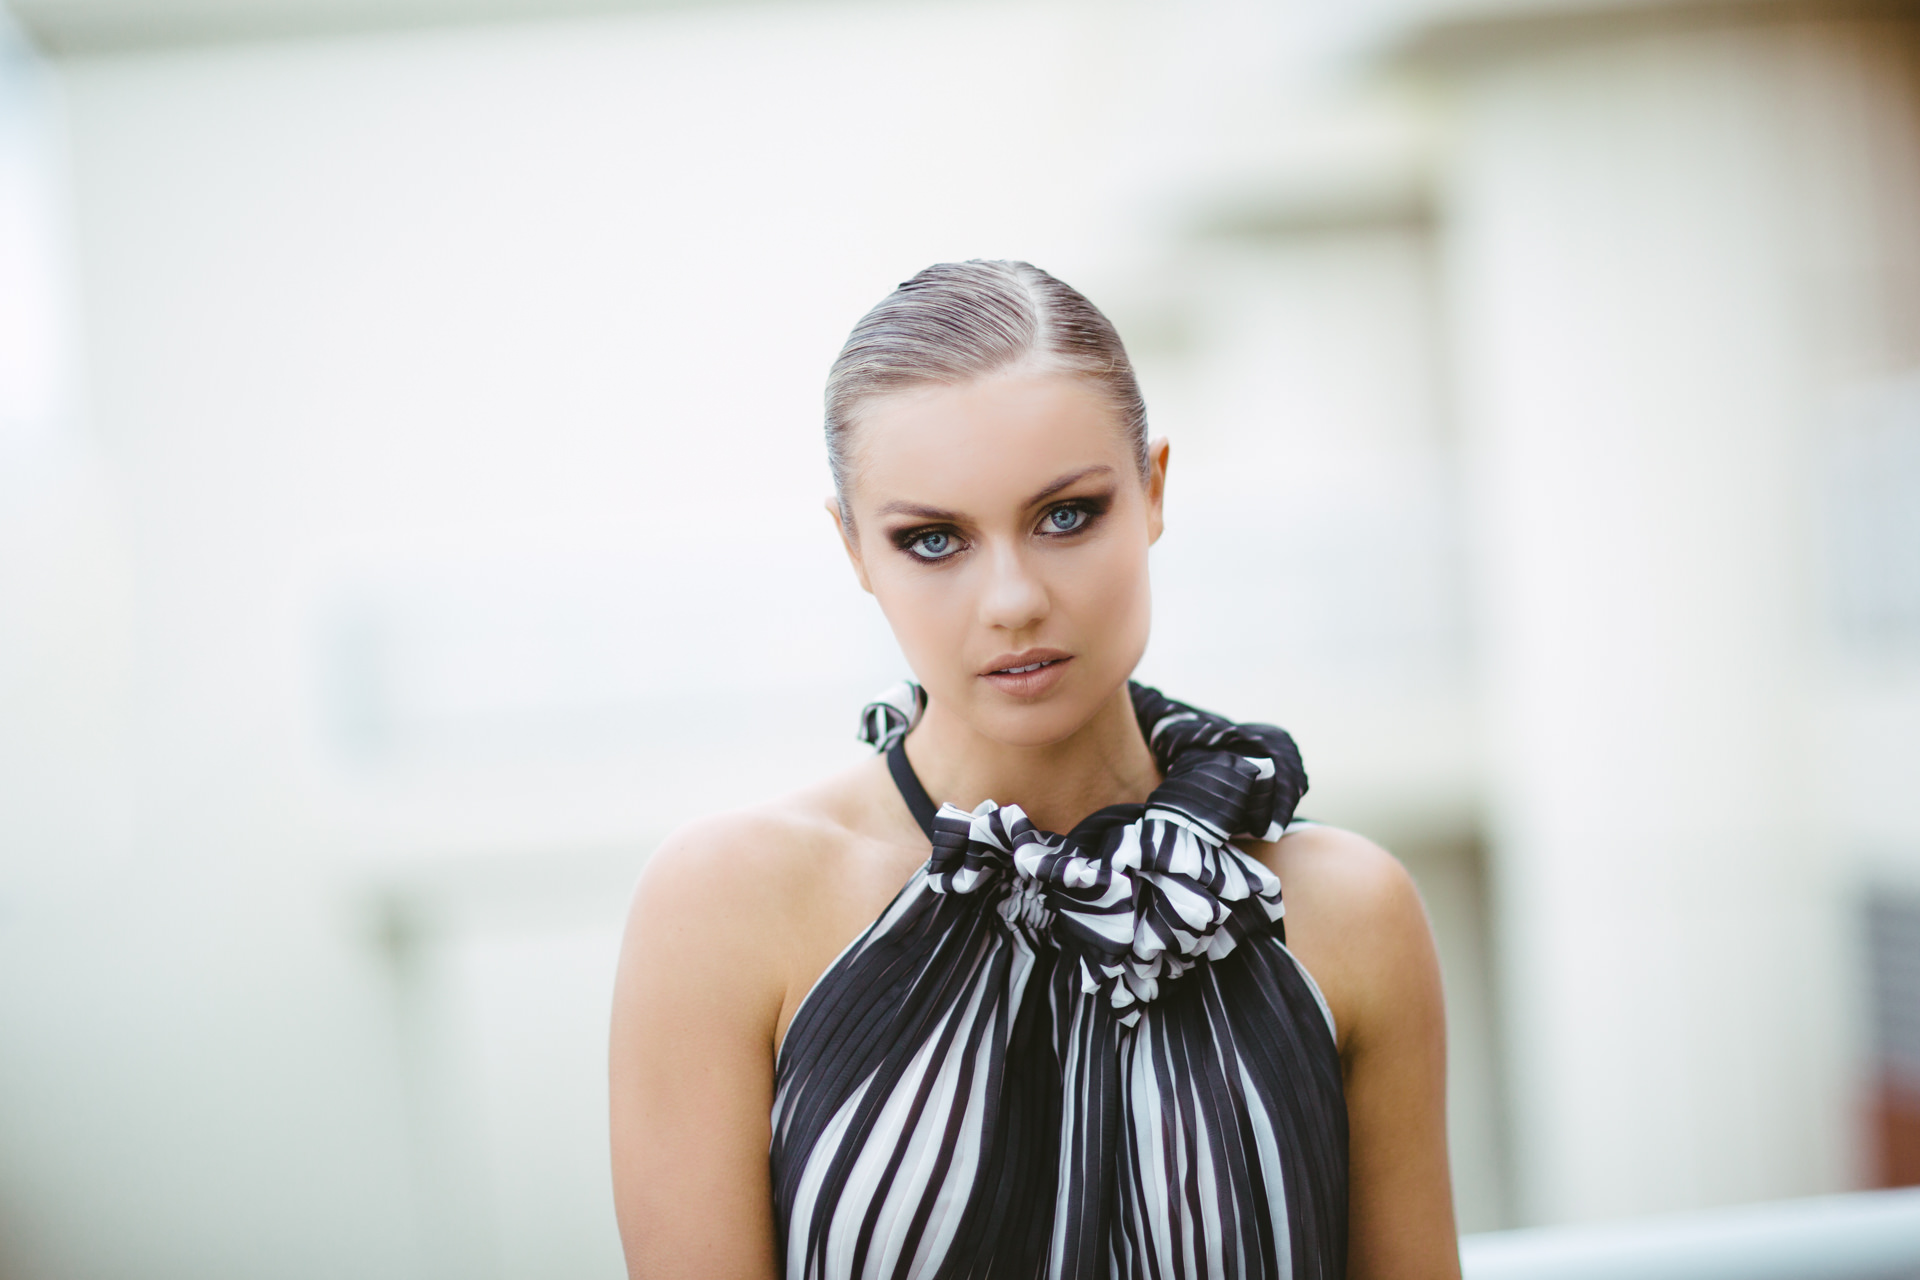 stunning looks - portrait photography in melbourne